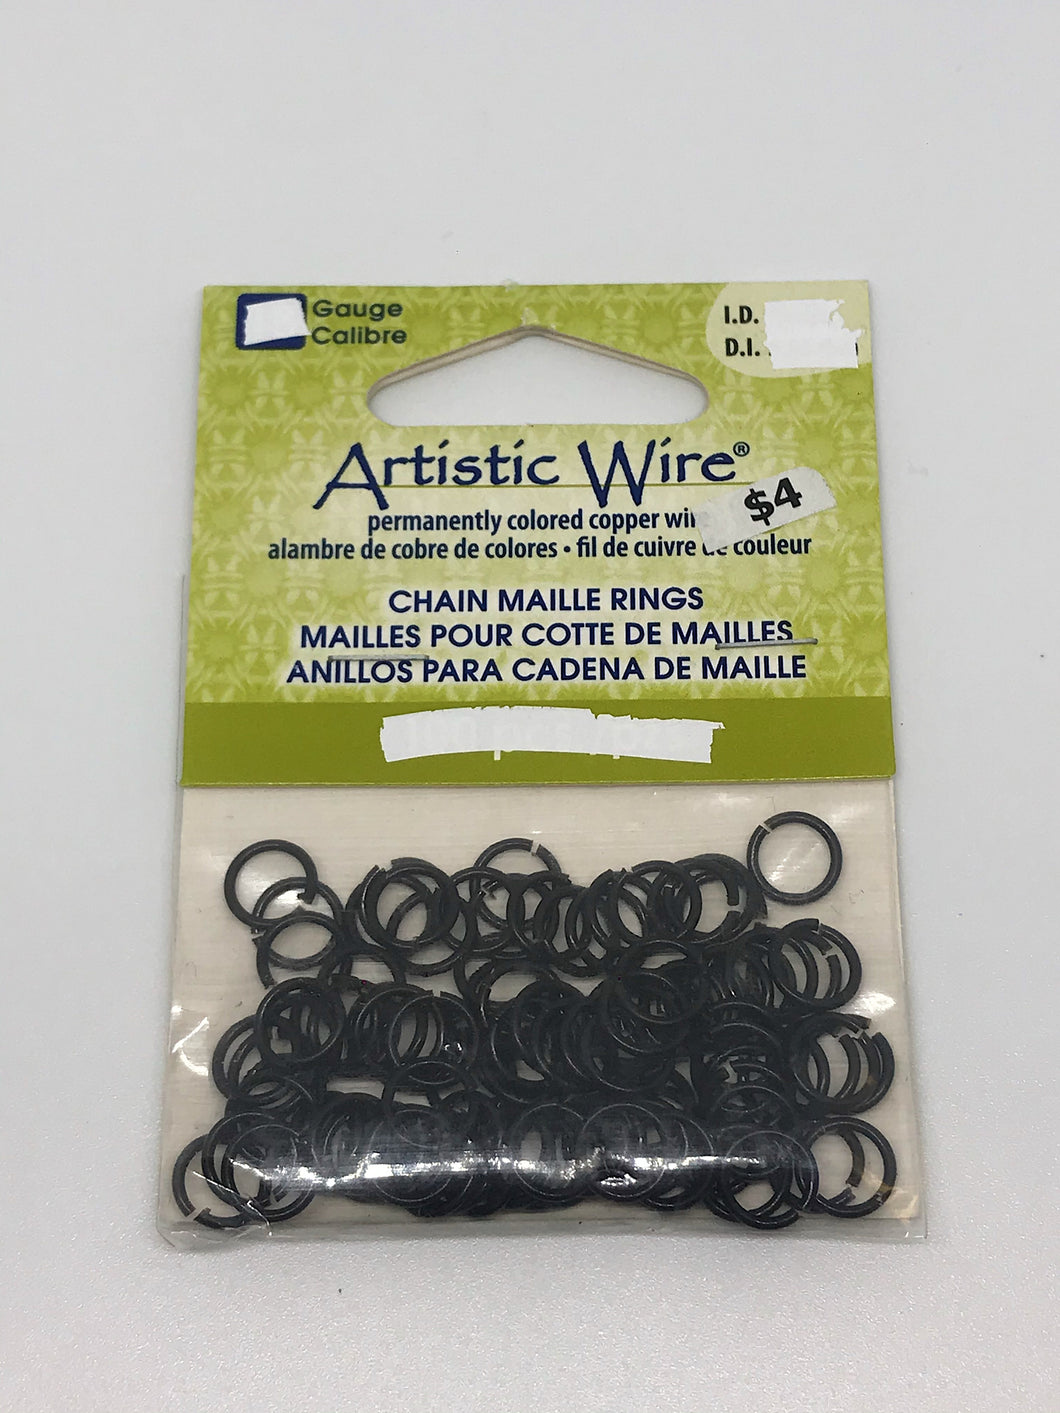 Jump Rings Artistic Wire Black 200pcs 20G 1/8